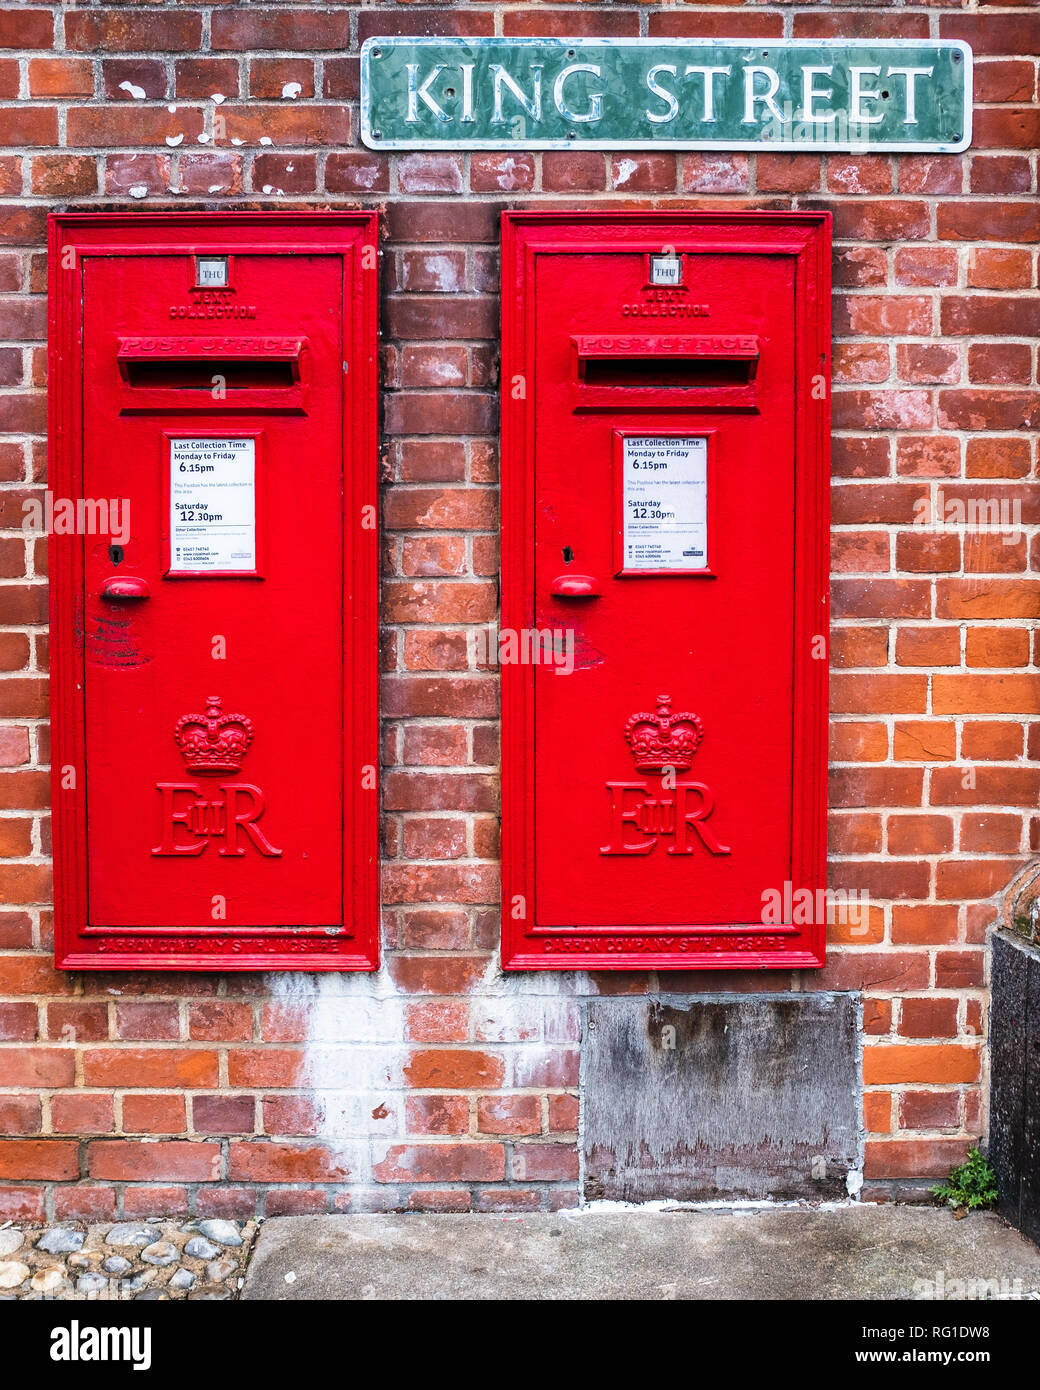 Royal Mail Postboxes - two Royal Mail set into a wall in King Street Thetford UK - Stock Image